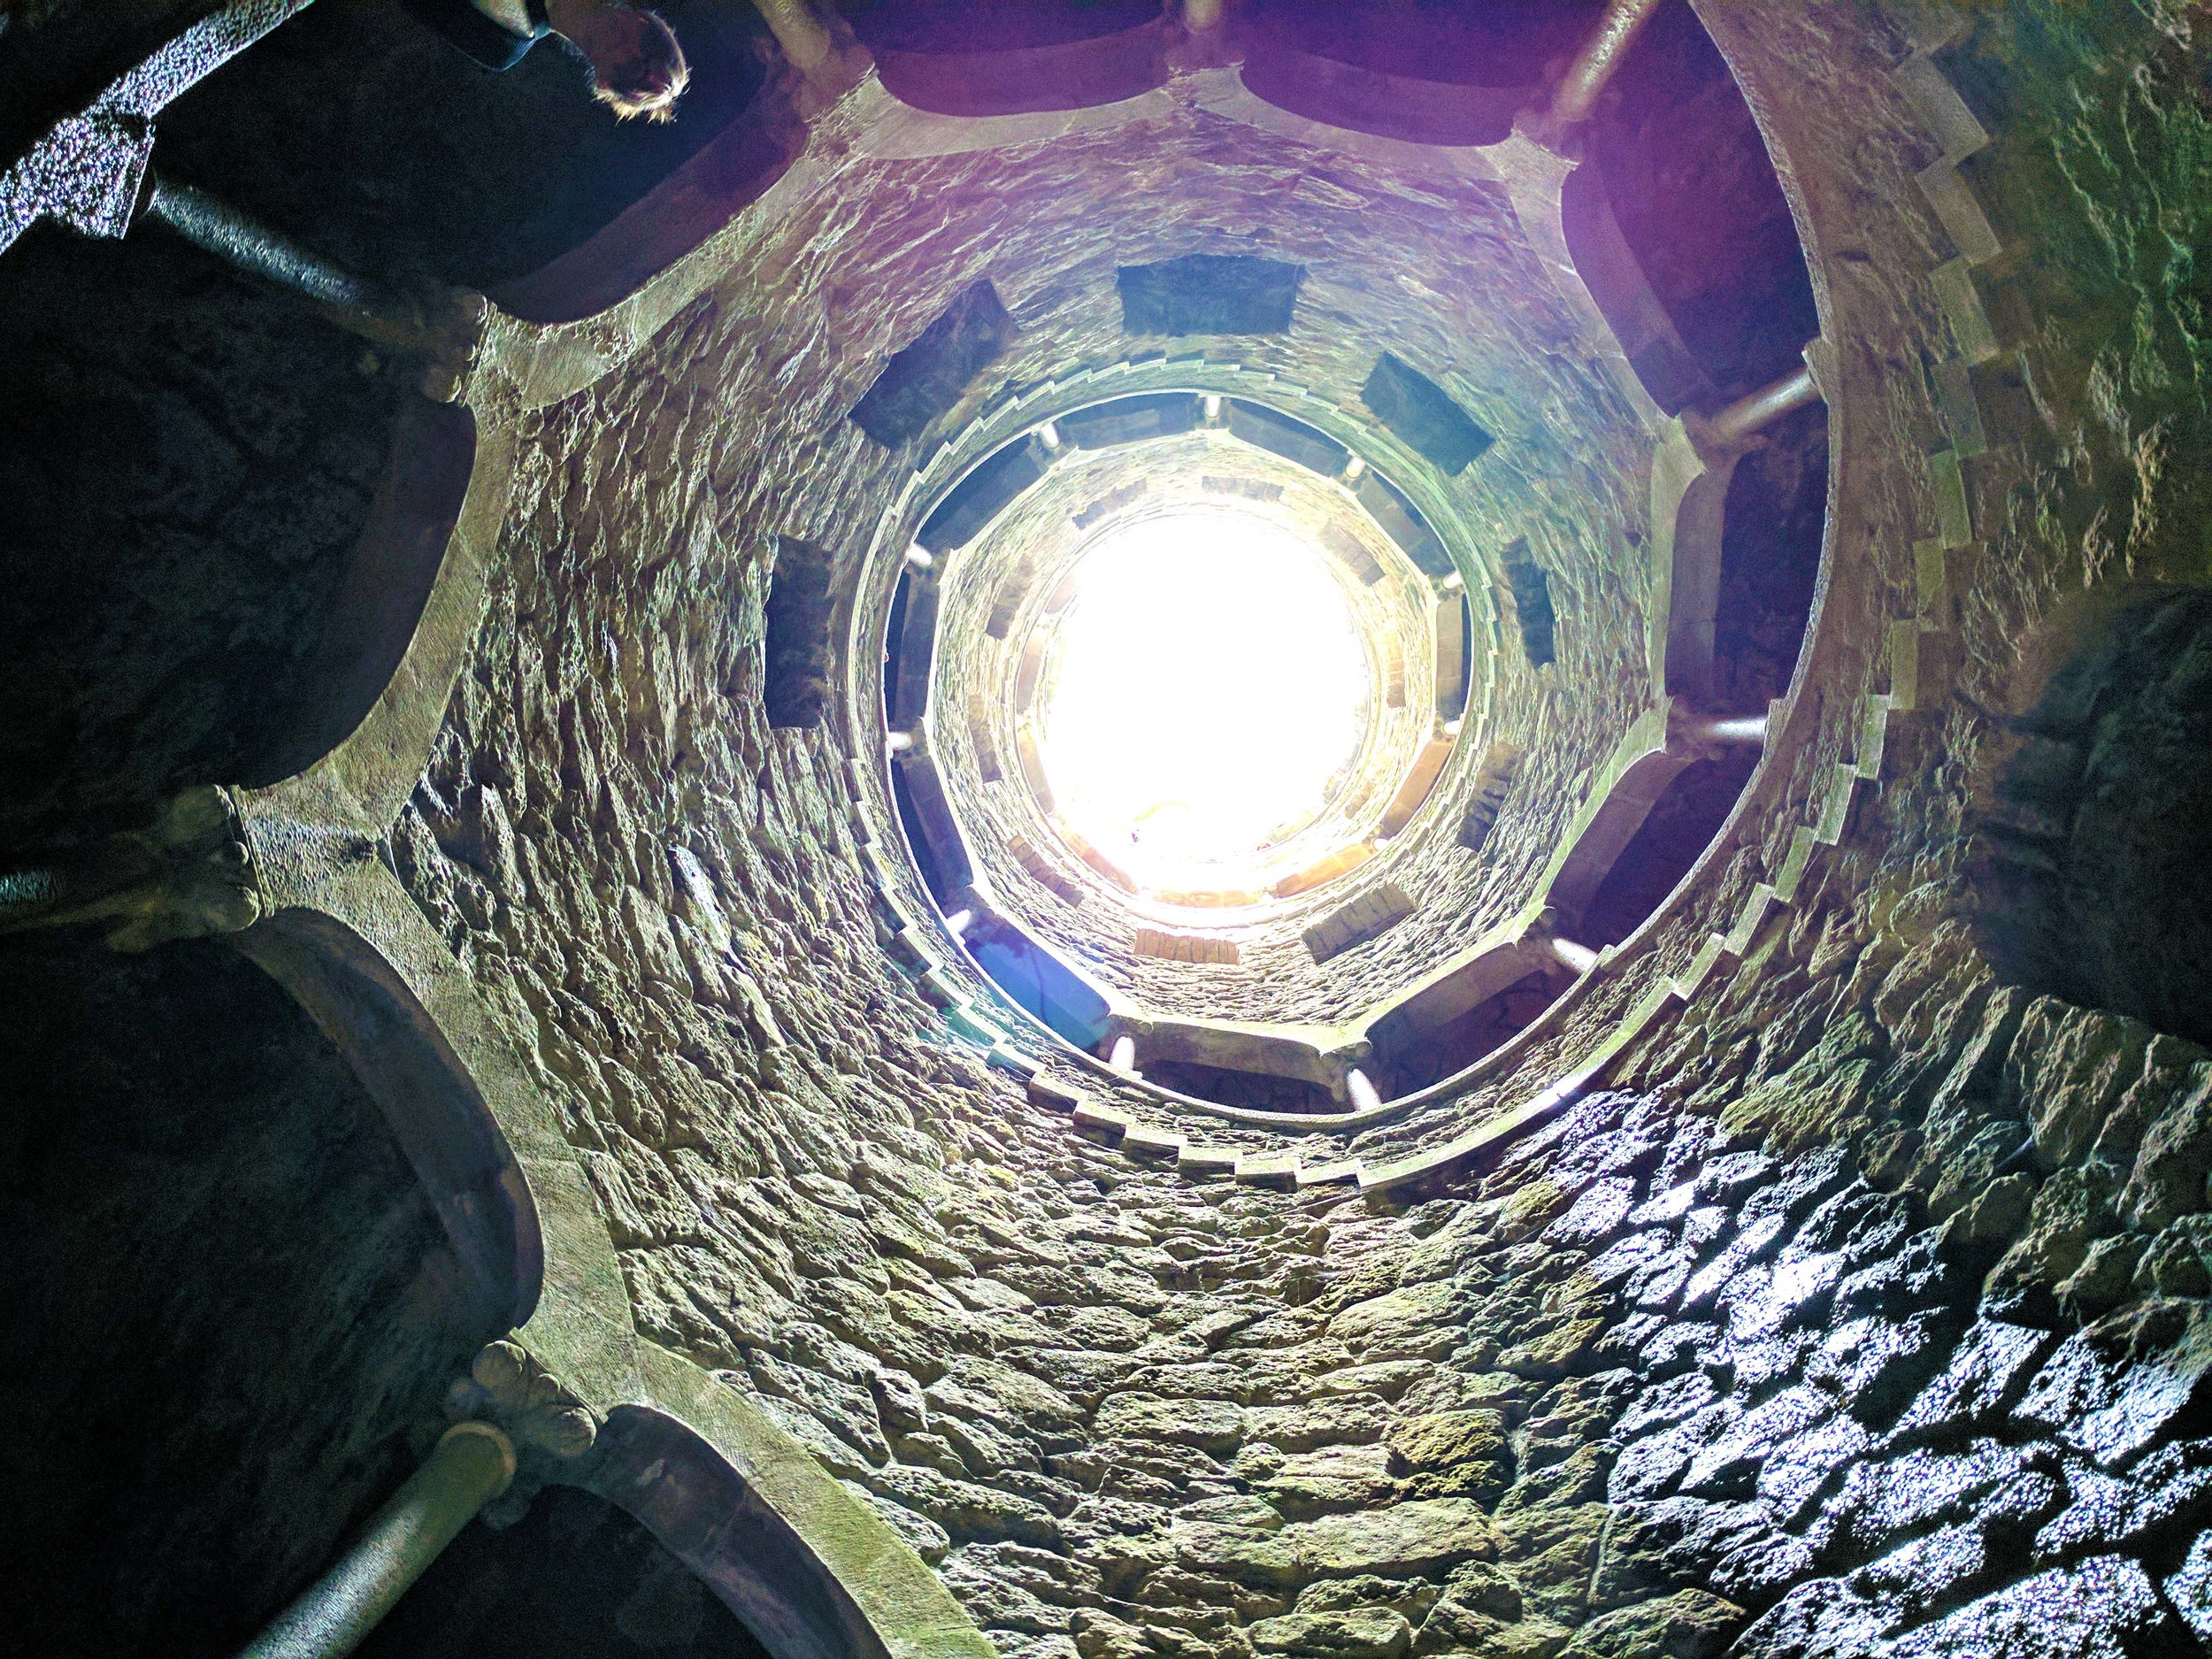 And looking up from the bottom